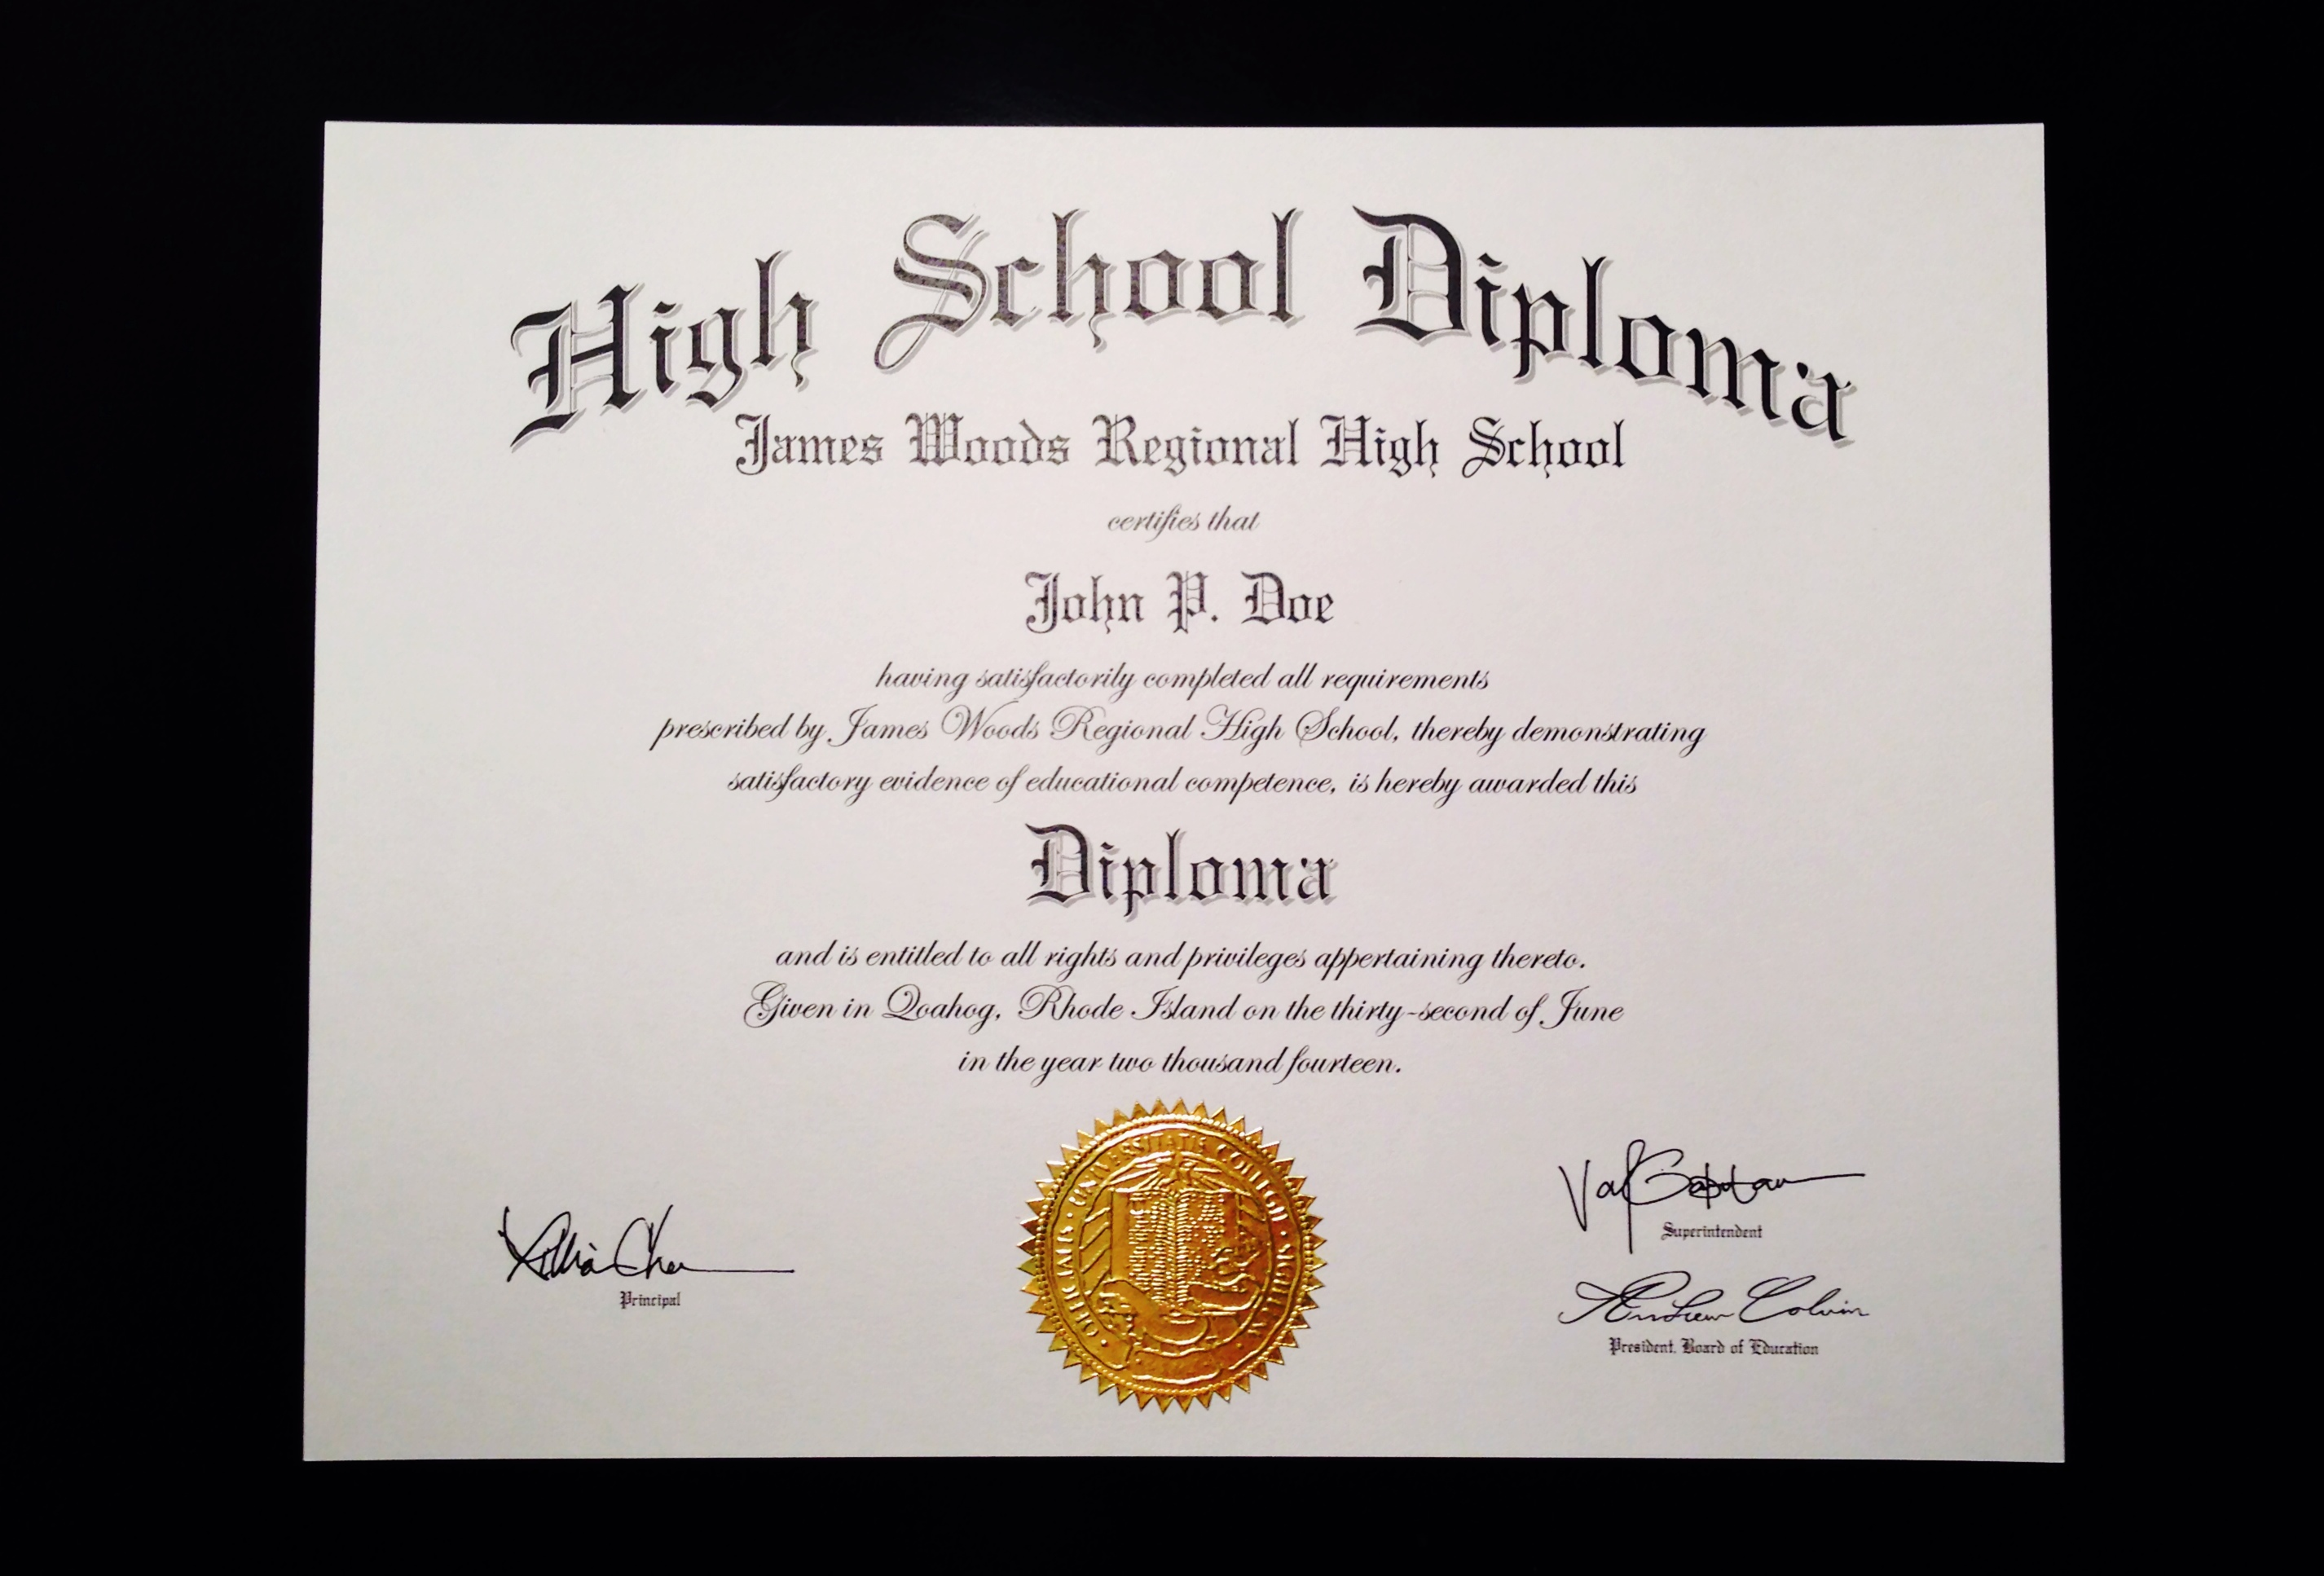 high school diploma templates free The Best Home School Guide!!